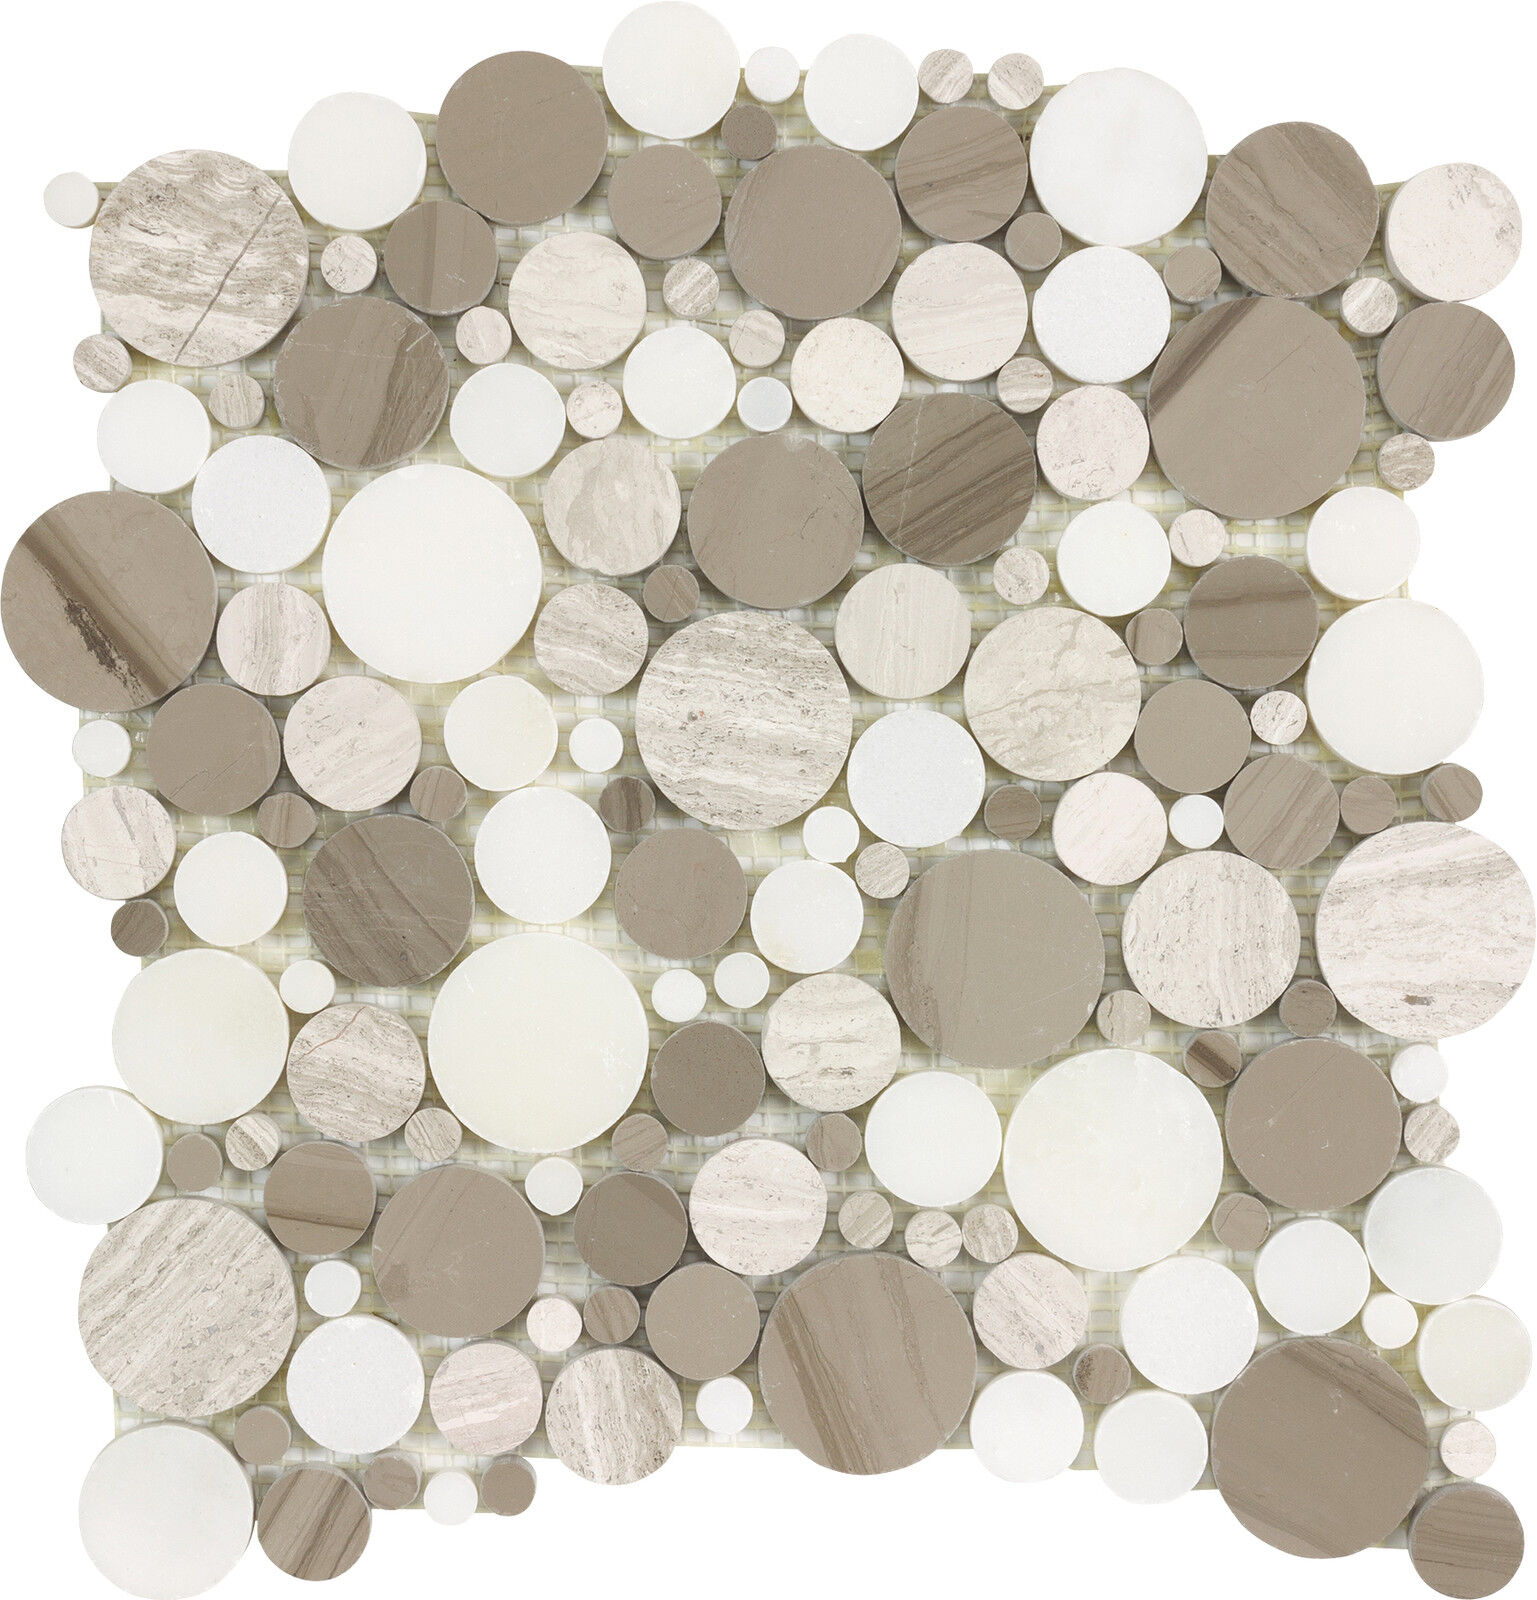 Sample Stainless Steel Insert Marble Stone Beige Mosaic: Kitchen Bath Bubble White Thassos Wooden Beige Athens Gray